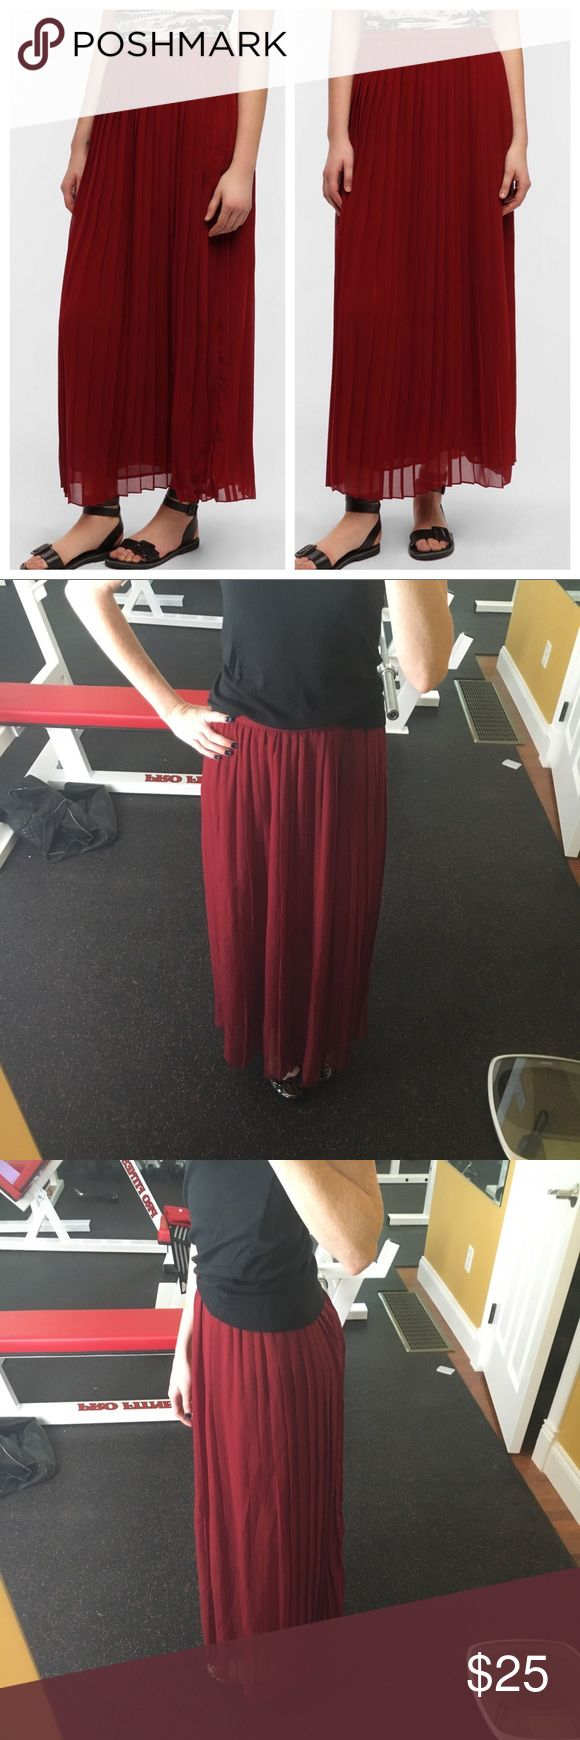 Sparkle and Fade pleated chiffon maxi skirt A really pretty maxi skirt from Urban Outfitters. In a maroon/ox blood color. Invisible side zipper. Lined. Can be worn high waisted. Urban Outfitters Skirts Maxi